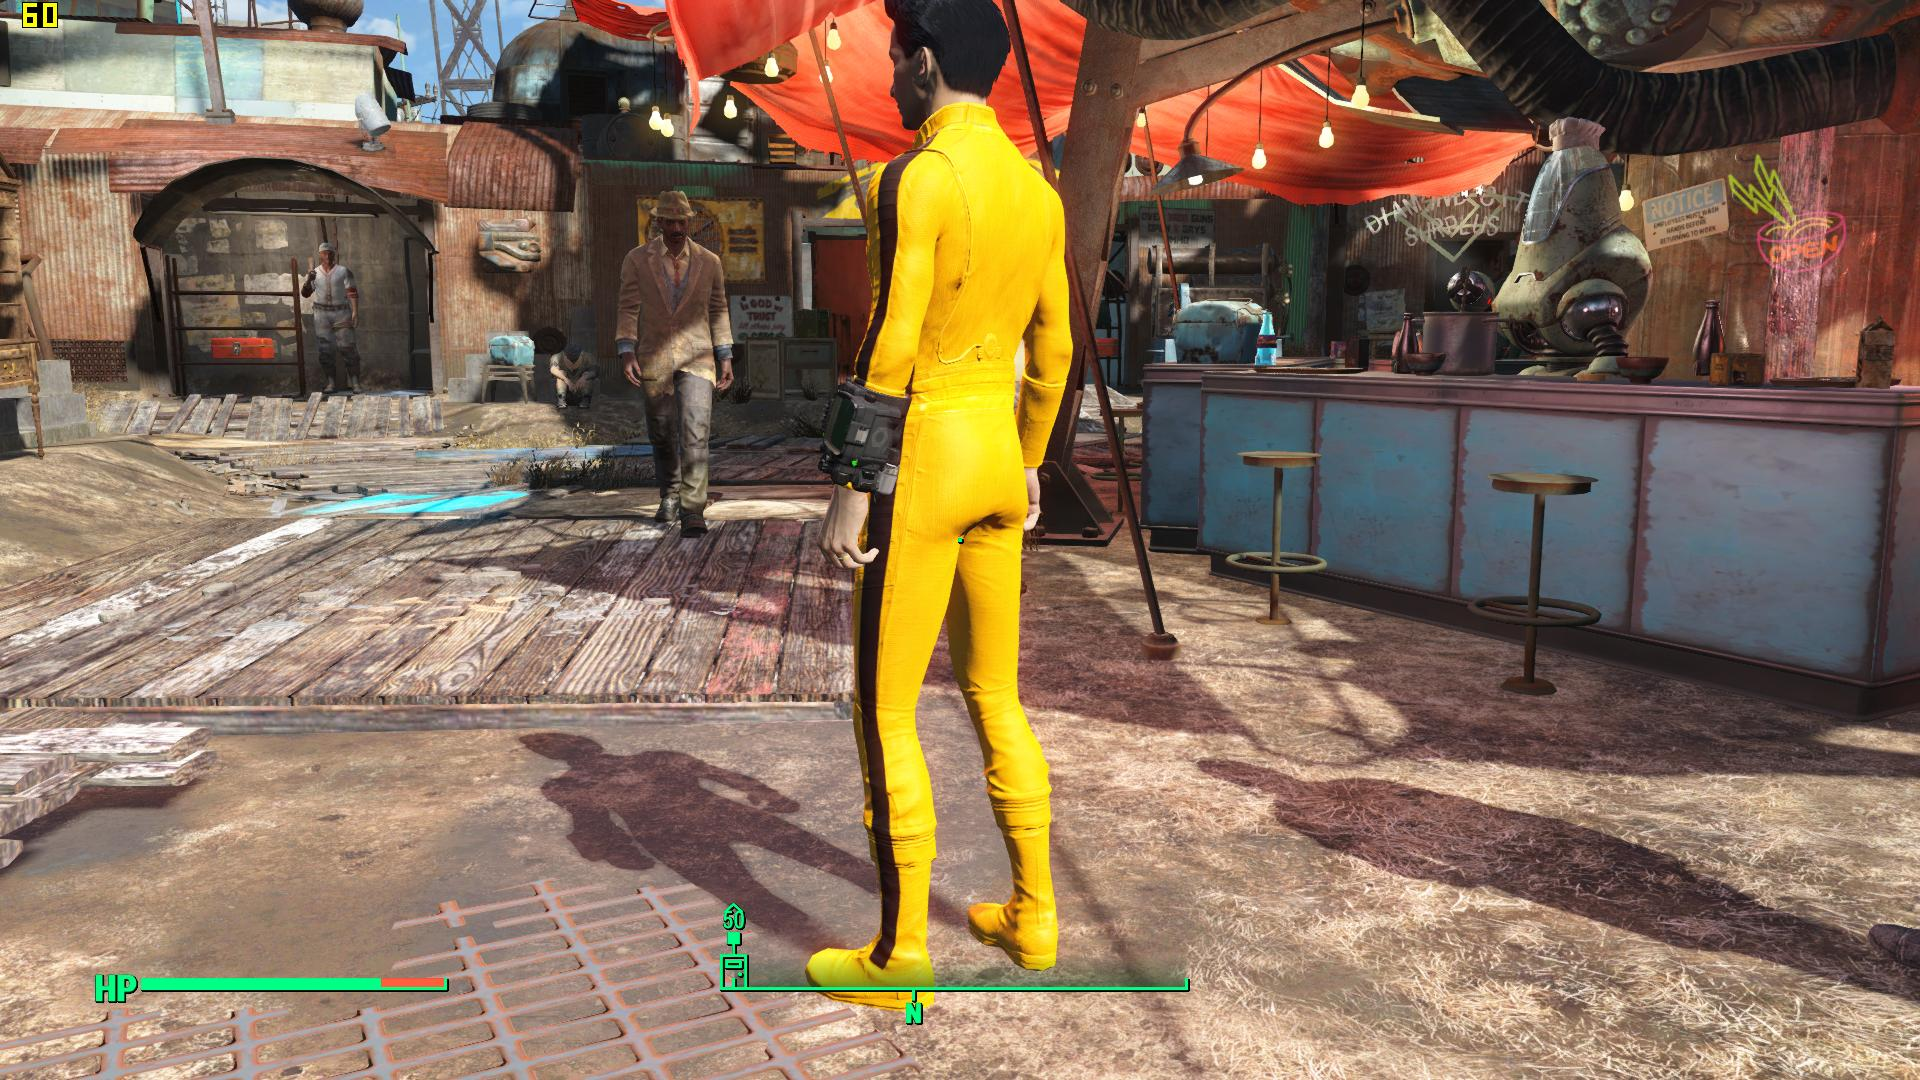 Bruce Lee Uniform Game Of Death Yellow Clothing At Fallout 4 Nexus